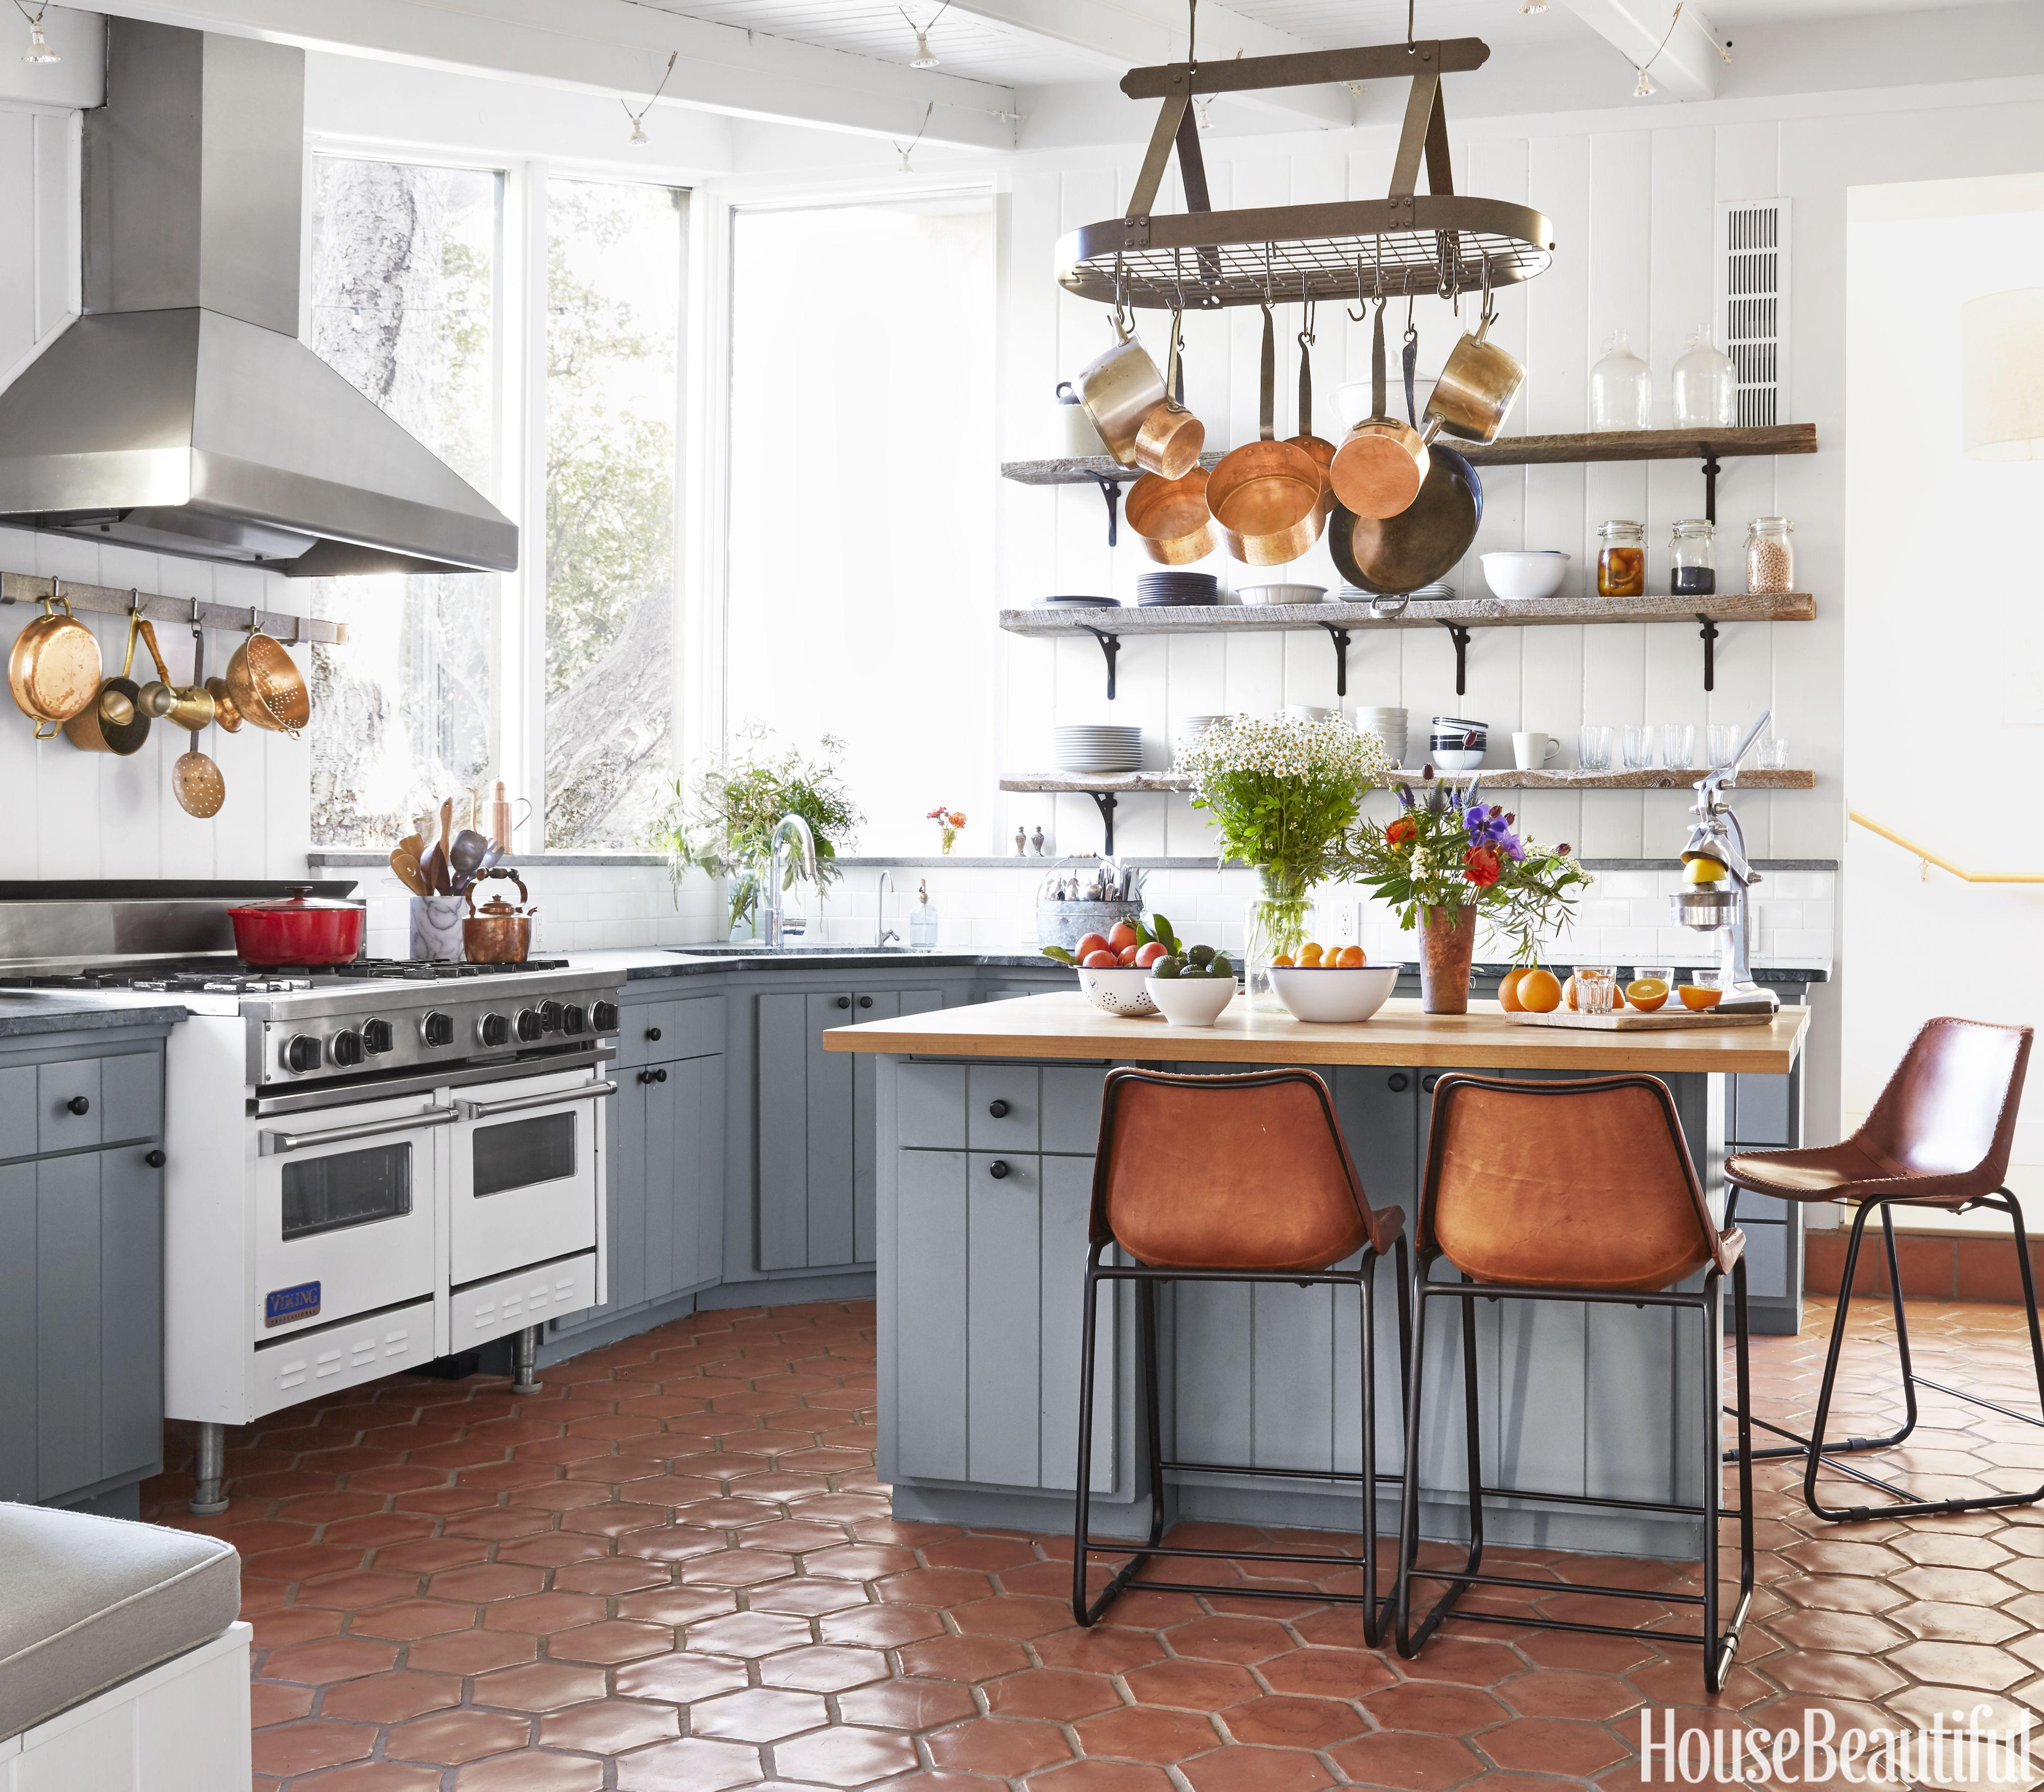 150 beautiful designer kitchens for every style gray cabinets 150 beautiful designer kitchens for every style kitchen floorscalifornia housescalifornia decortiled floorsspanish dailygadgetfo Image collections